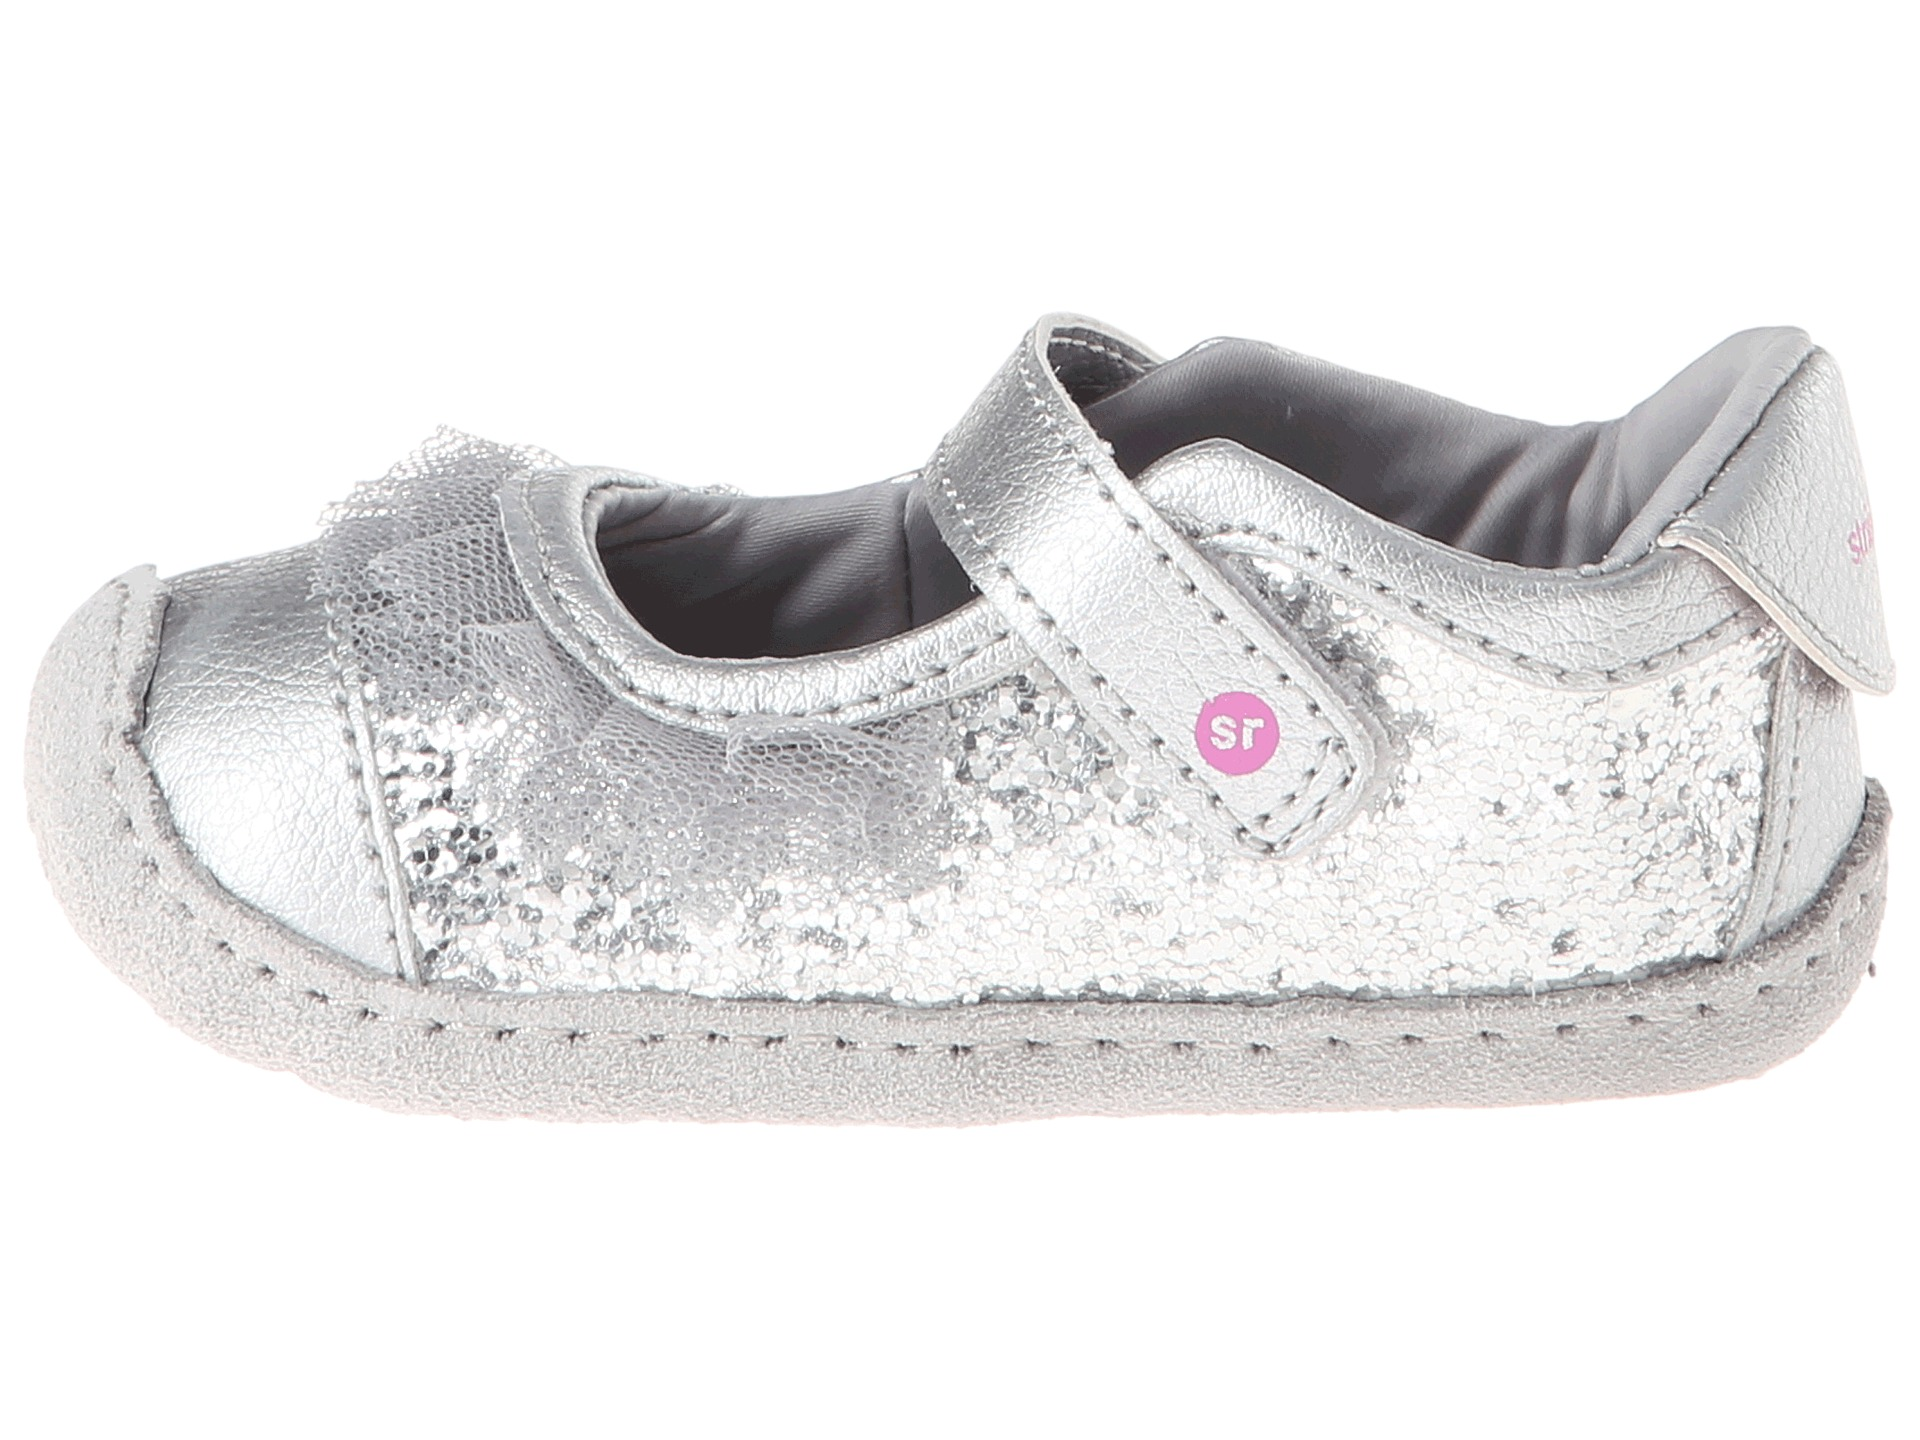 photo about Stride Rite Printable Coupon titled Stride ceremony keds sperry outlet printable discount coupons : Crest